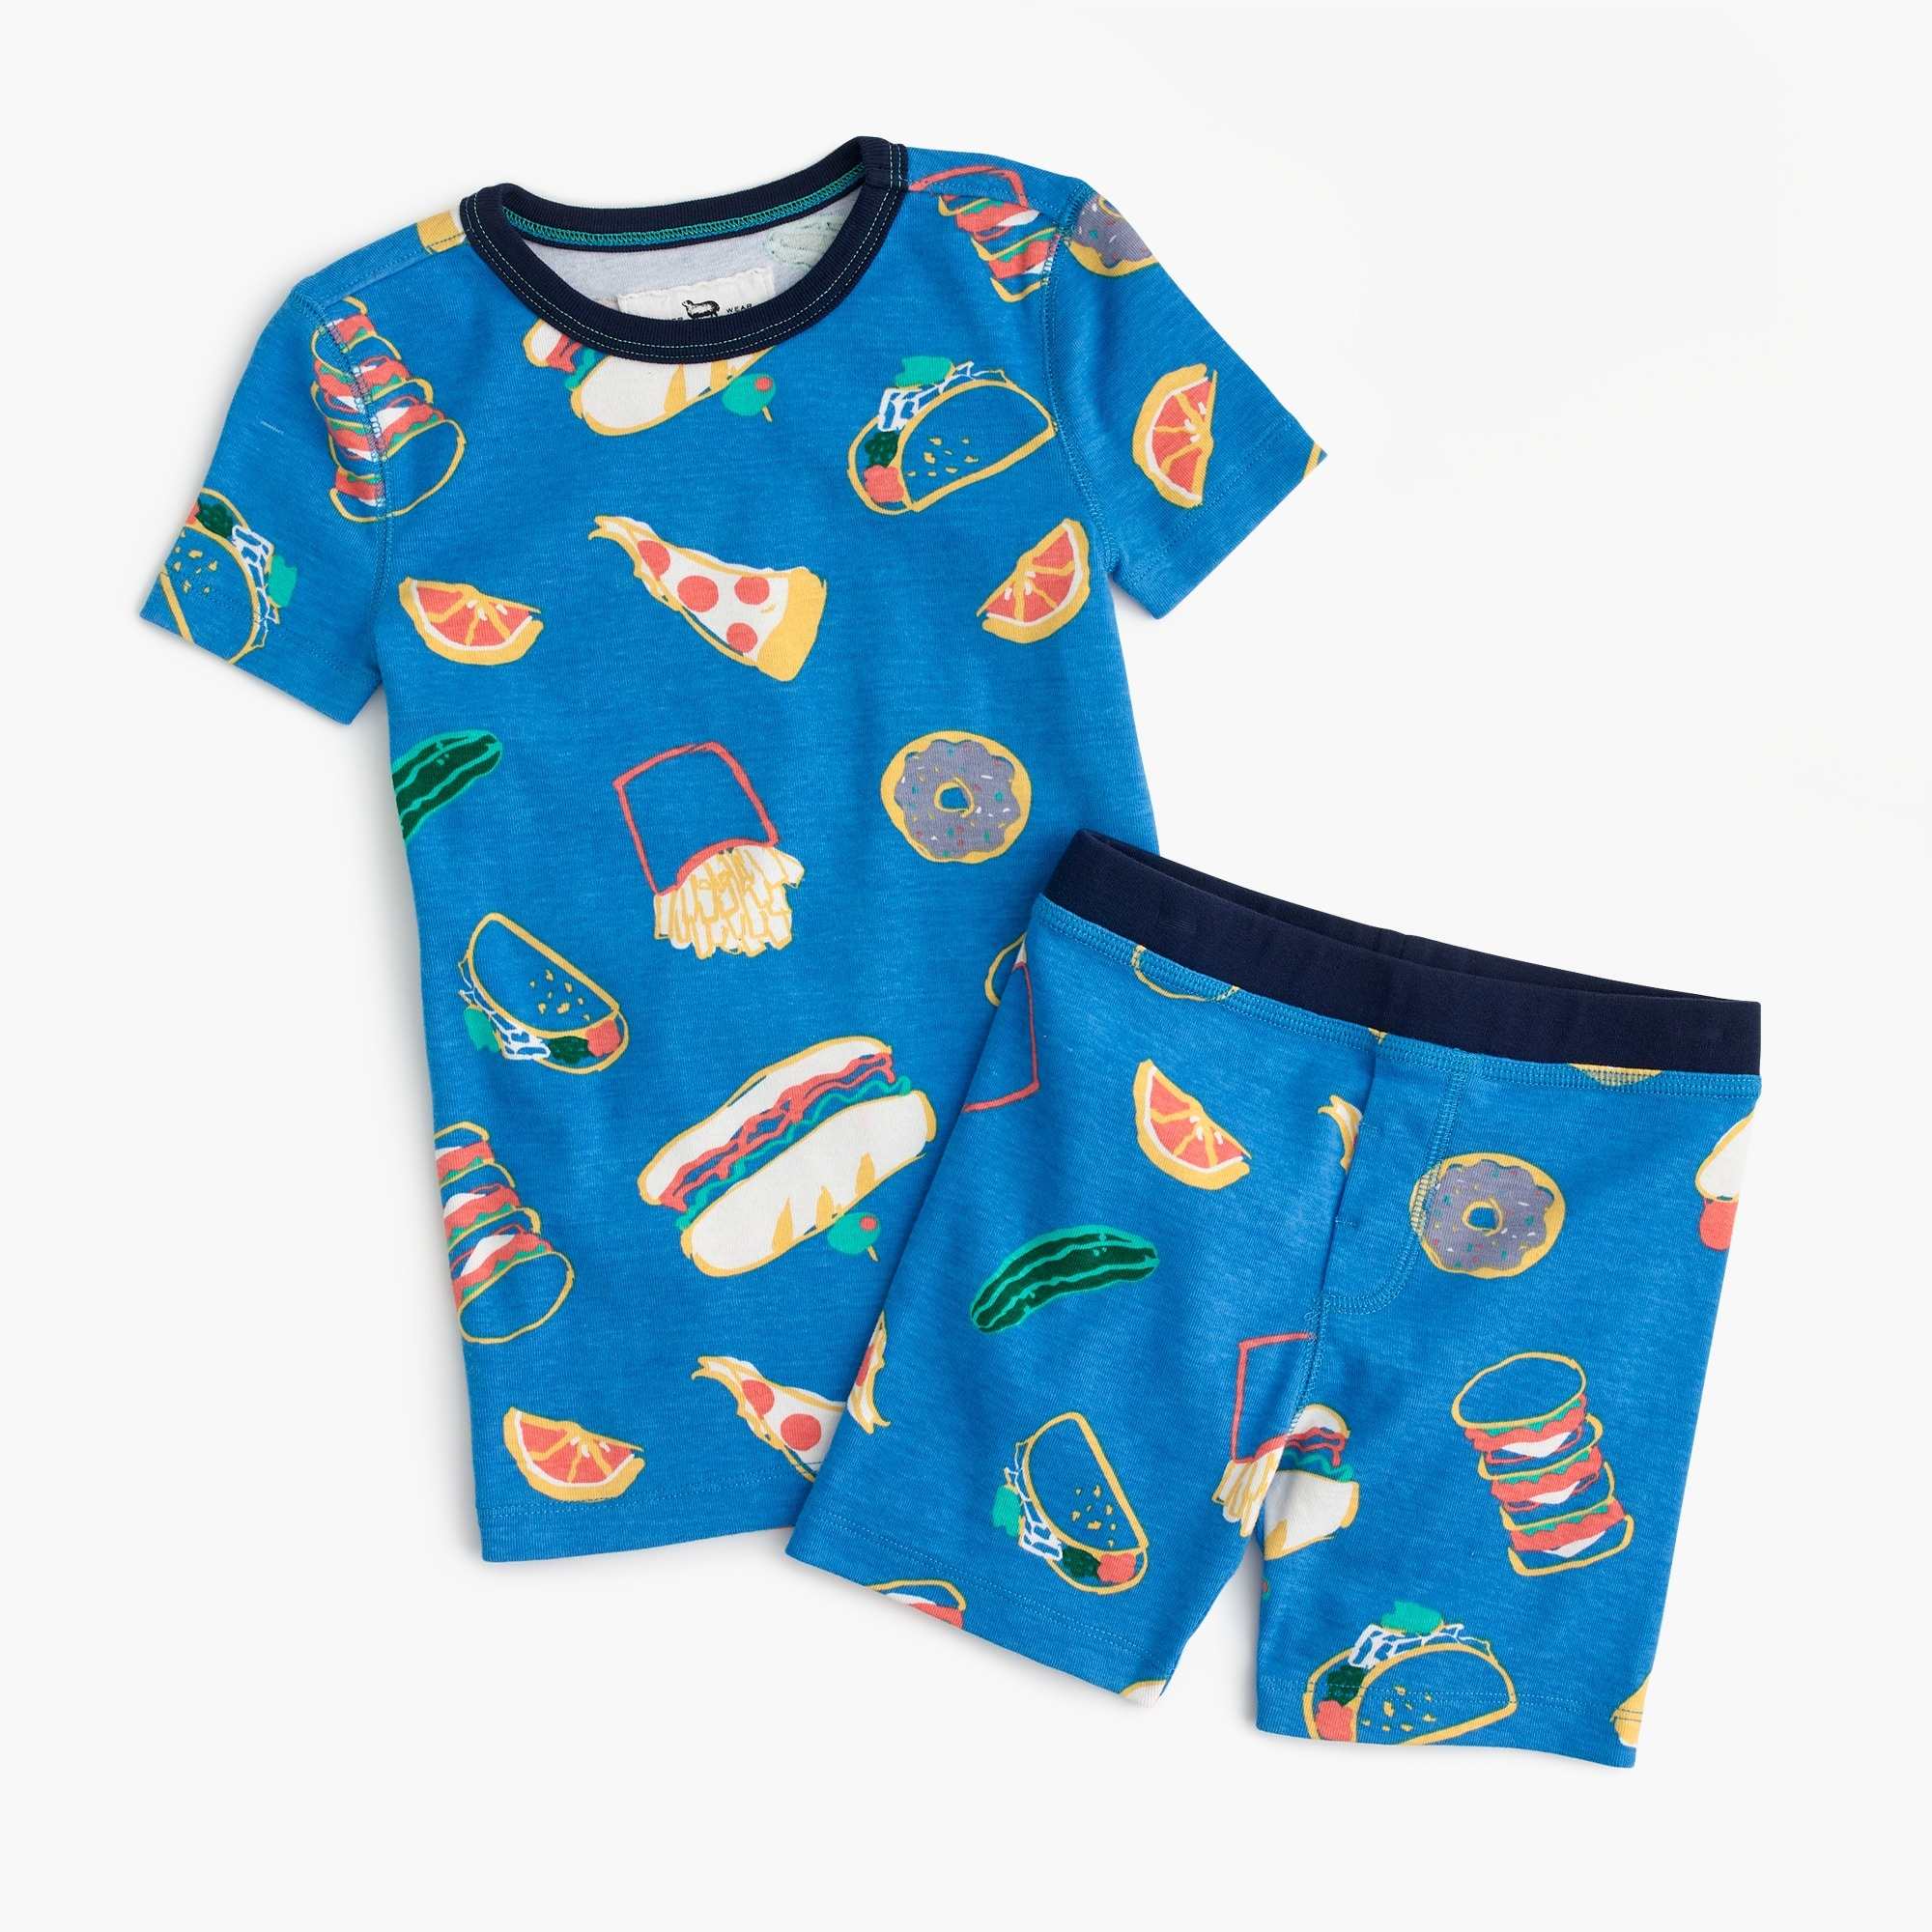 Kids' short pajama set in pizza party boy pajamas c